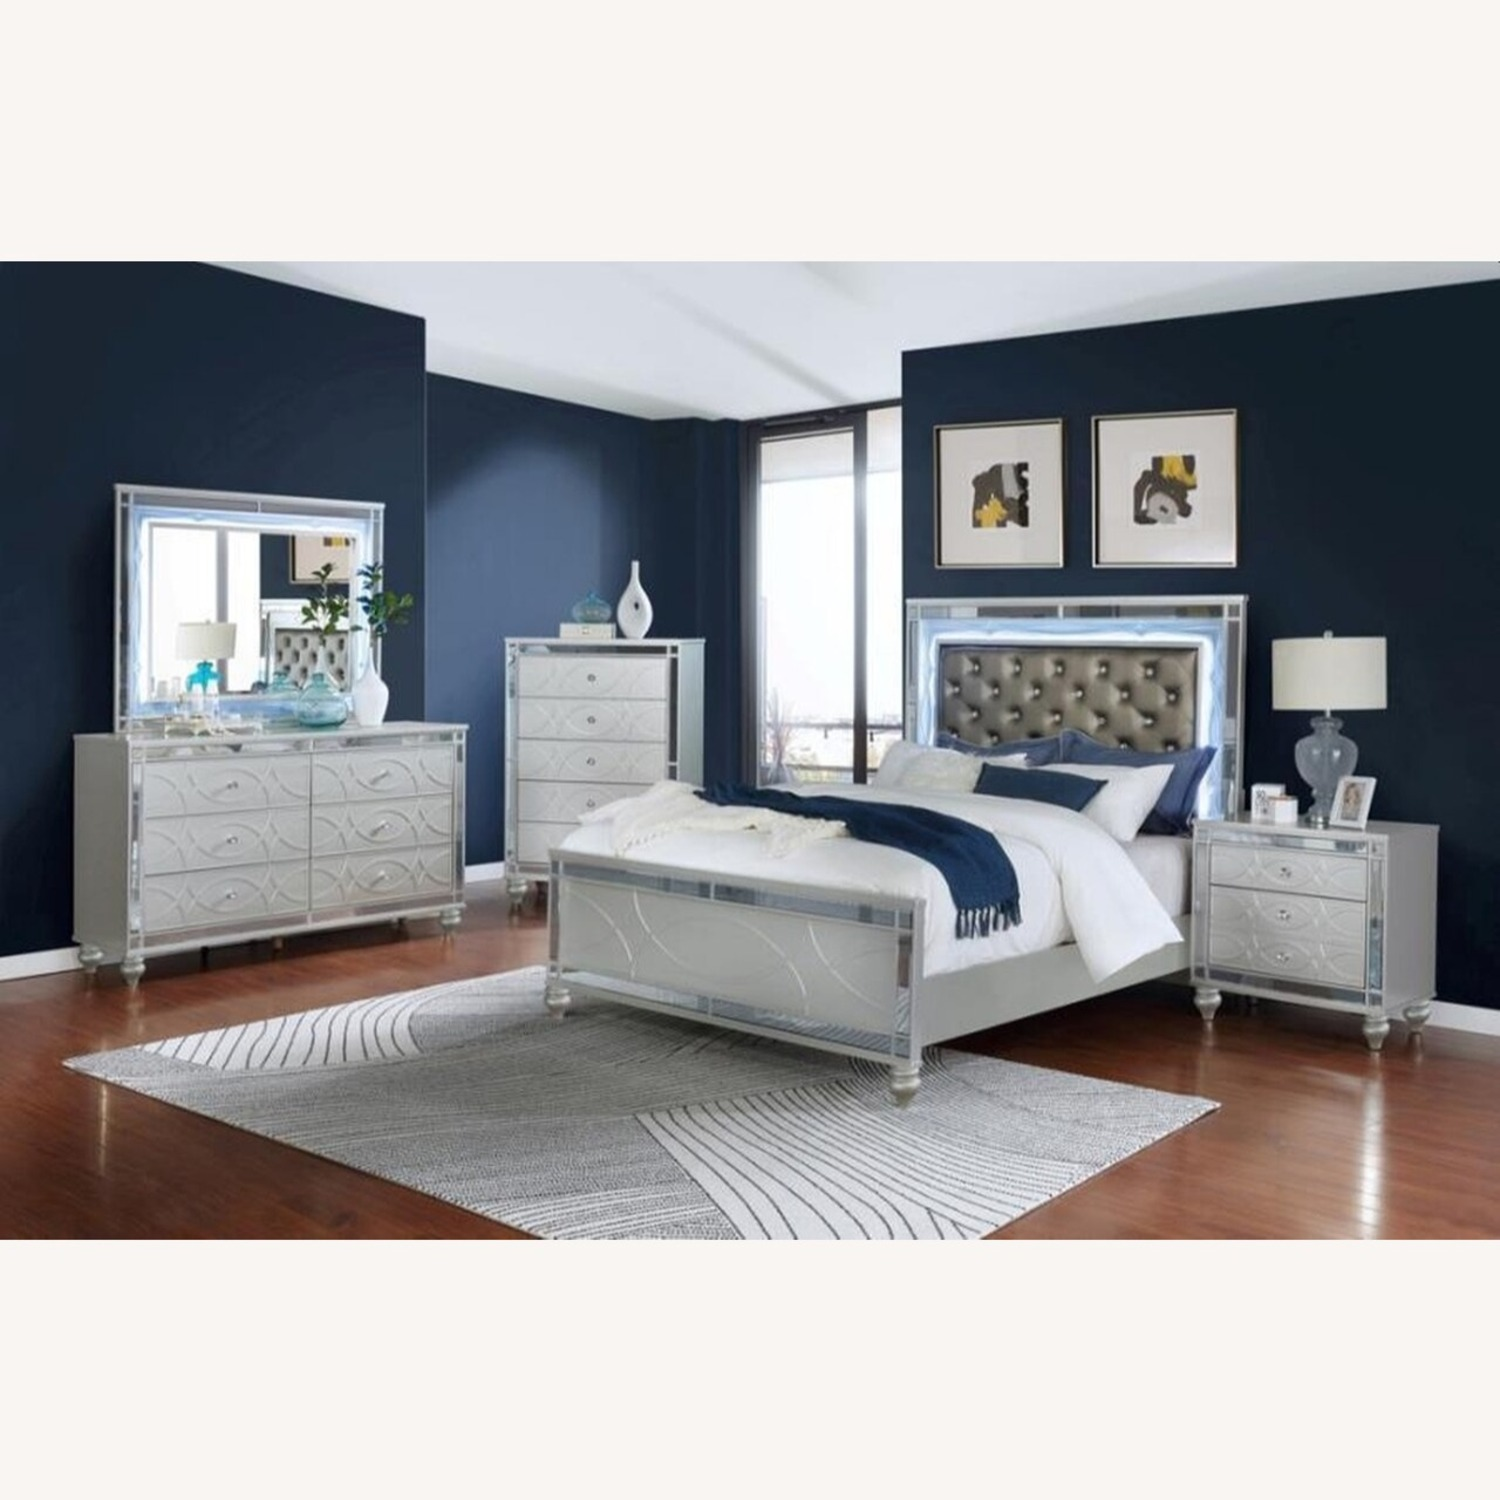 Nightstand In Silver Metal Finish - image-4